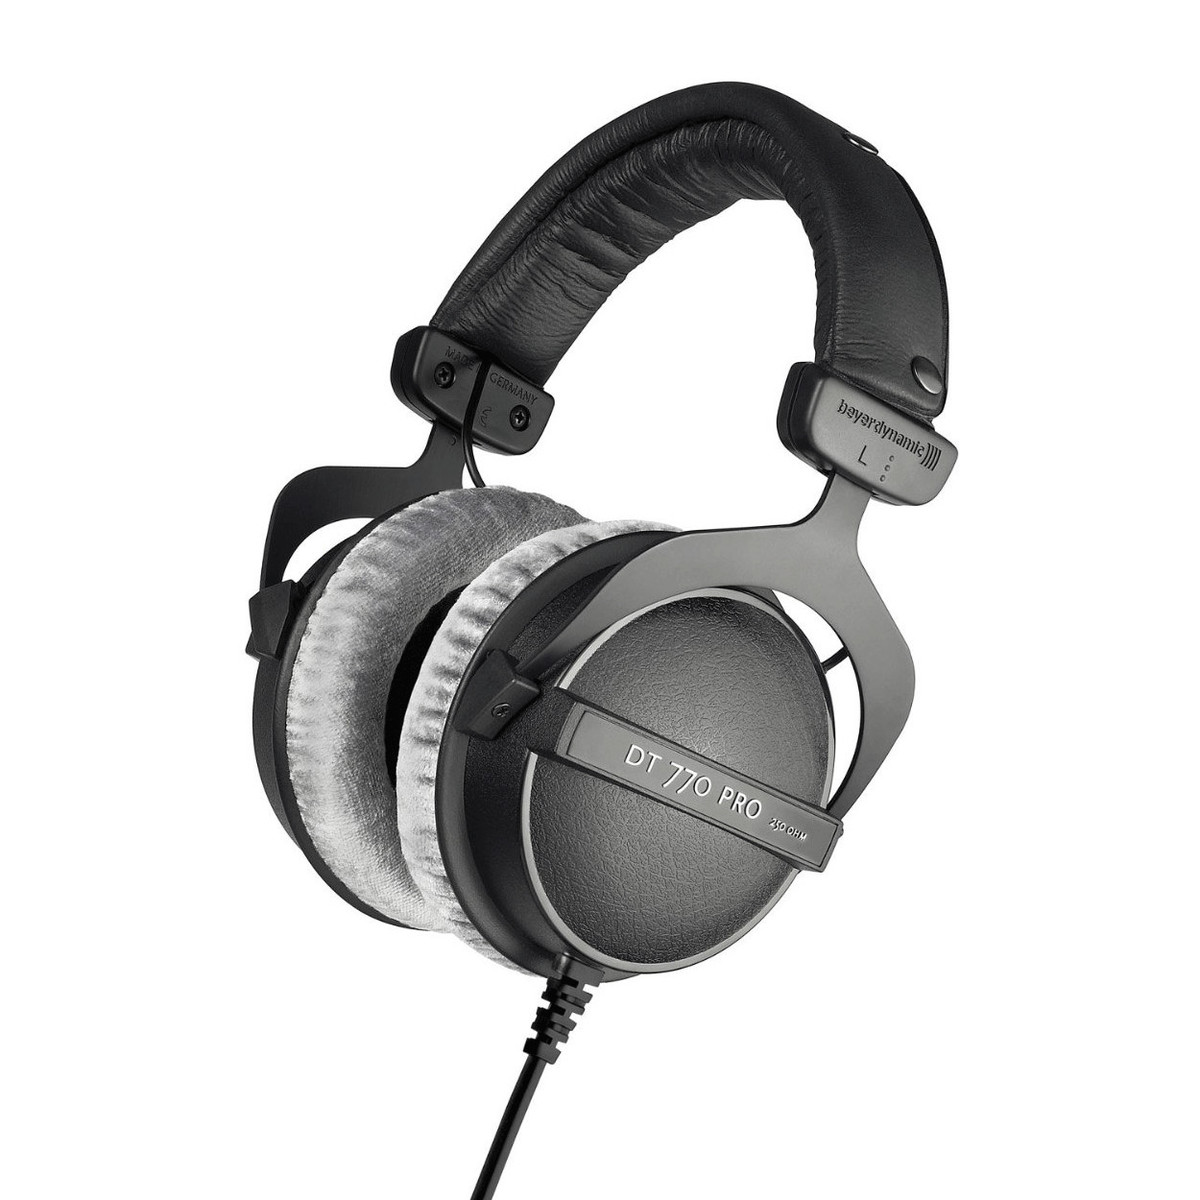 beyerdynamic dt 770 pro headphones 250 ohm box opened at gear4music. Black Bedroom Furniture Sets. Home Design Ideas